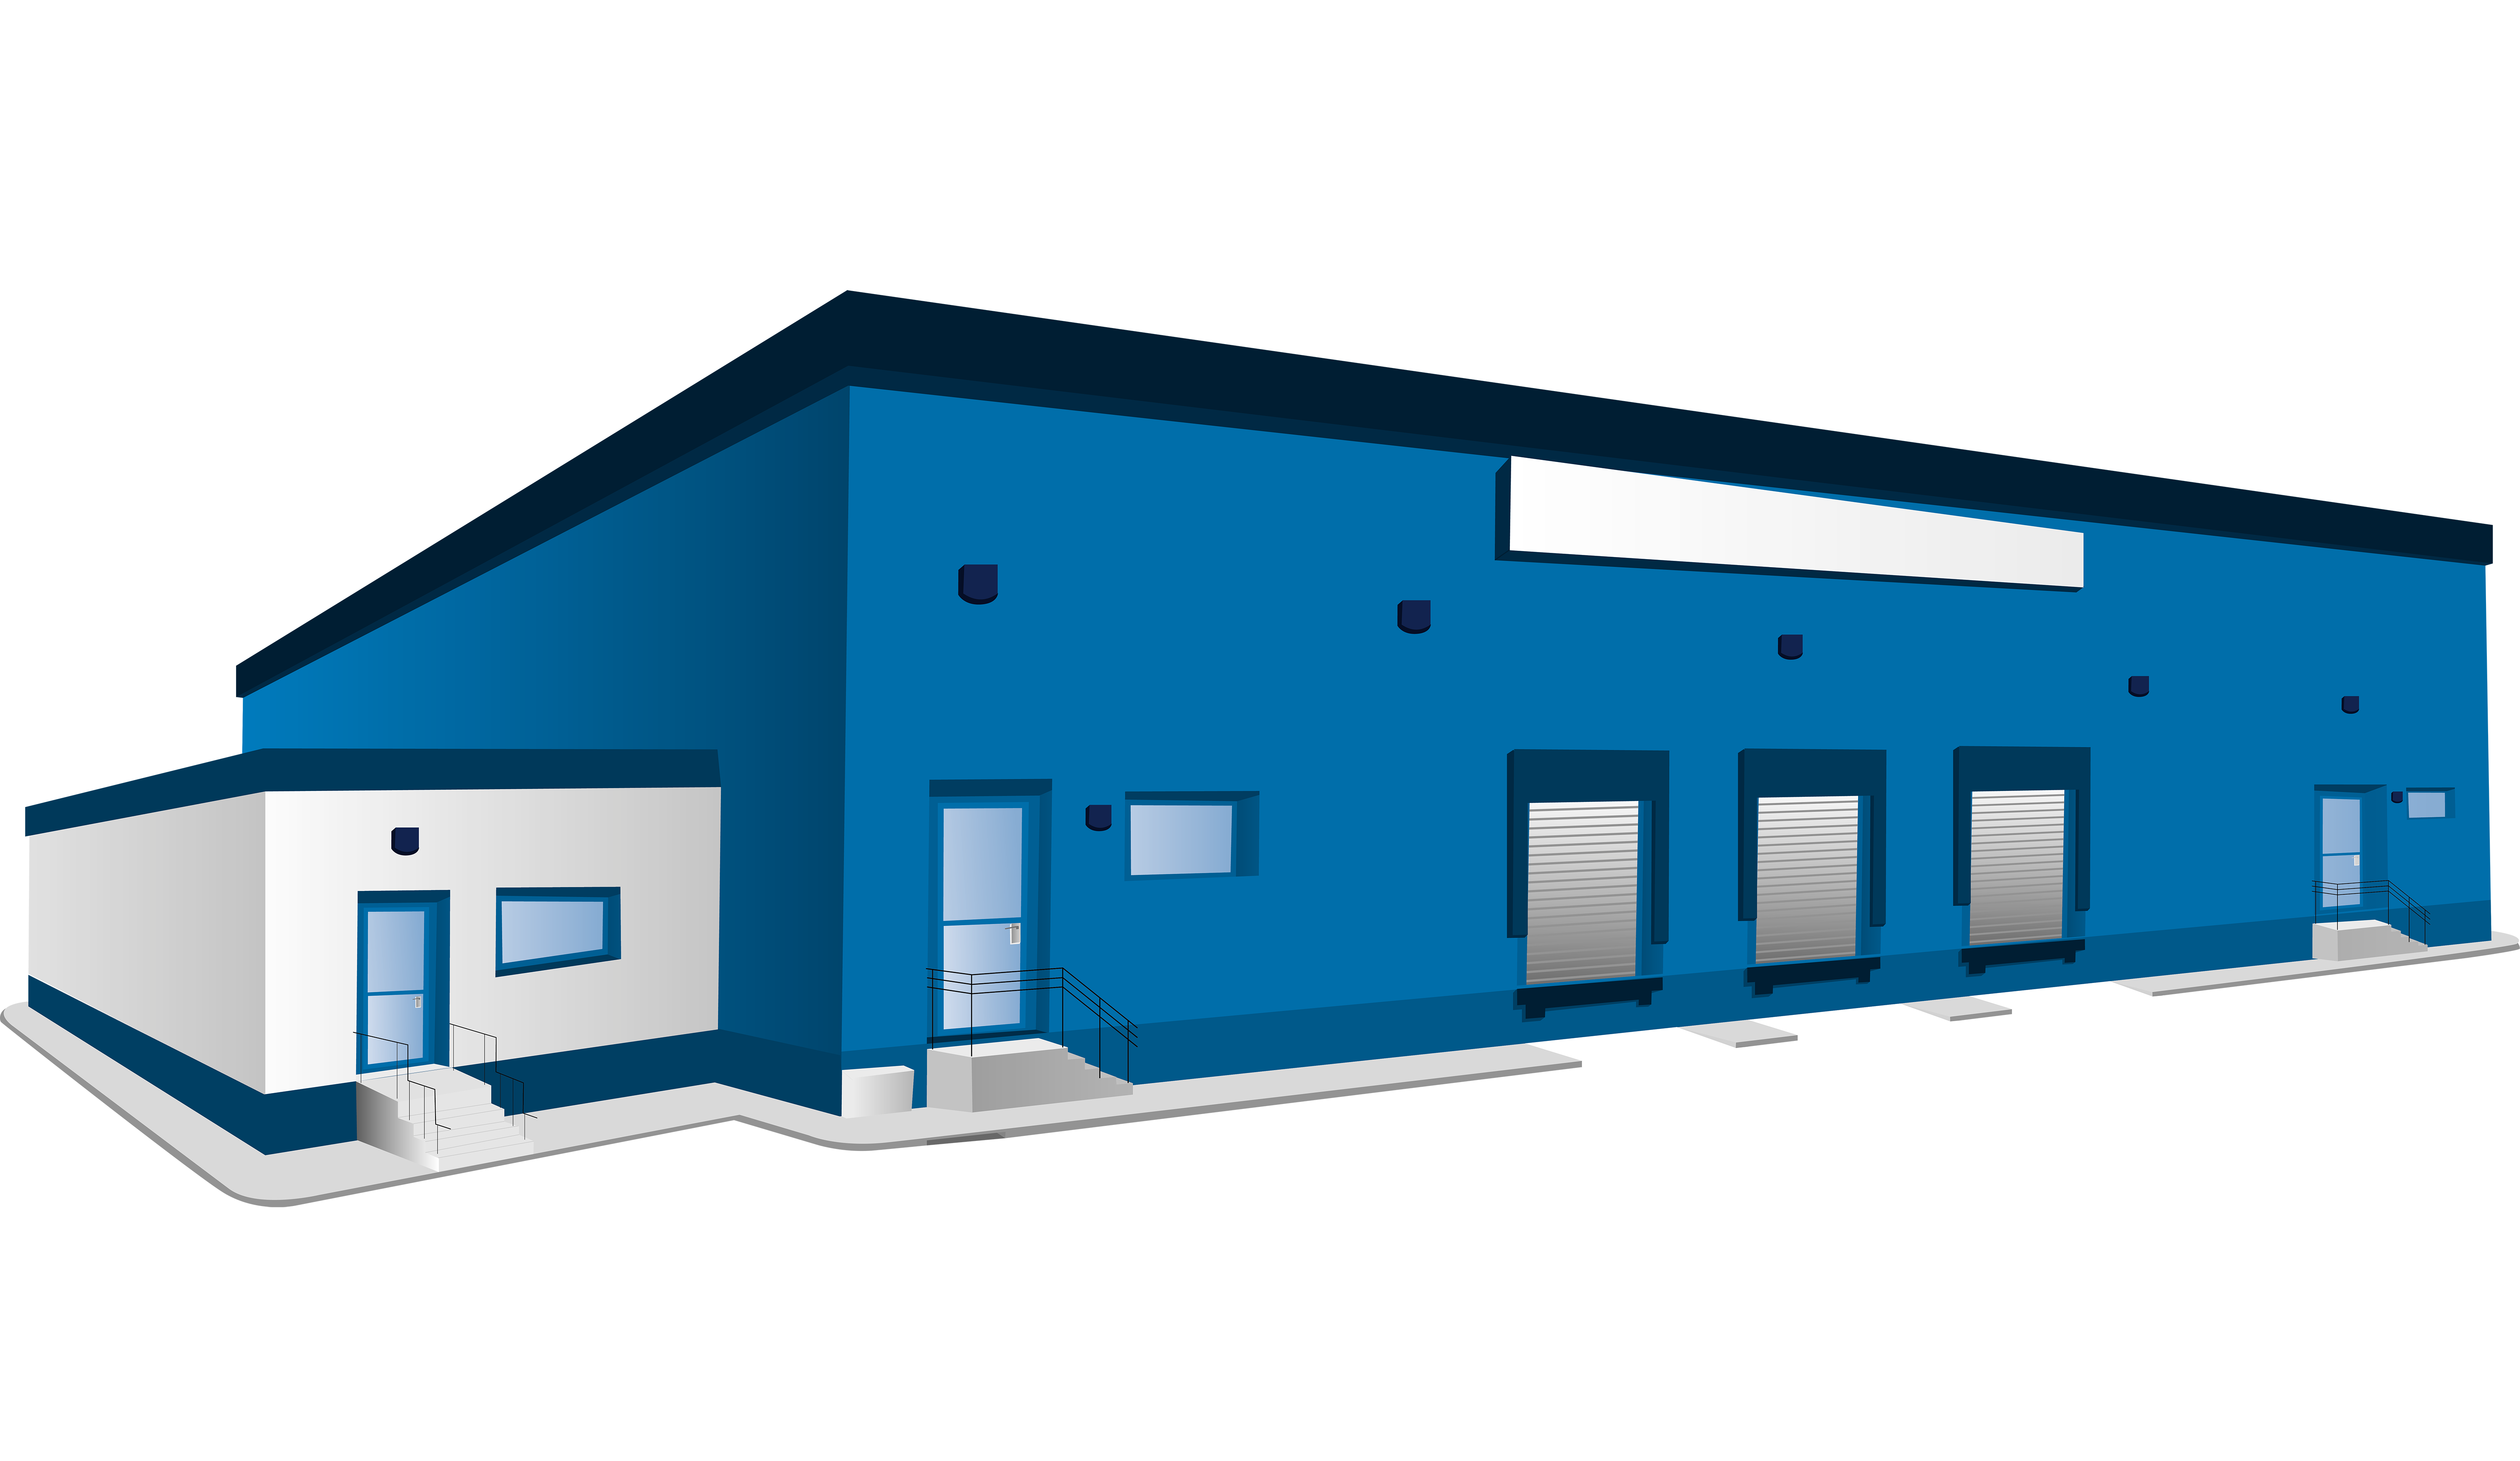 House roof clipart image freeuse library Warehouse Logistics Building Clip art - Blue warehouse 6000*3478 ... image freeuse library